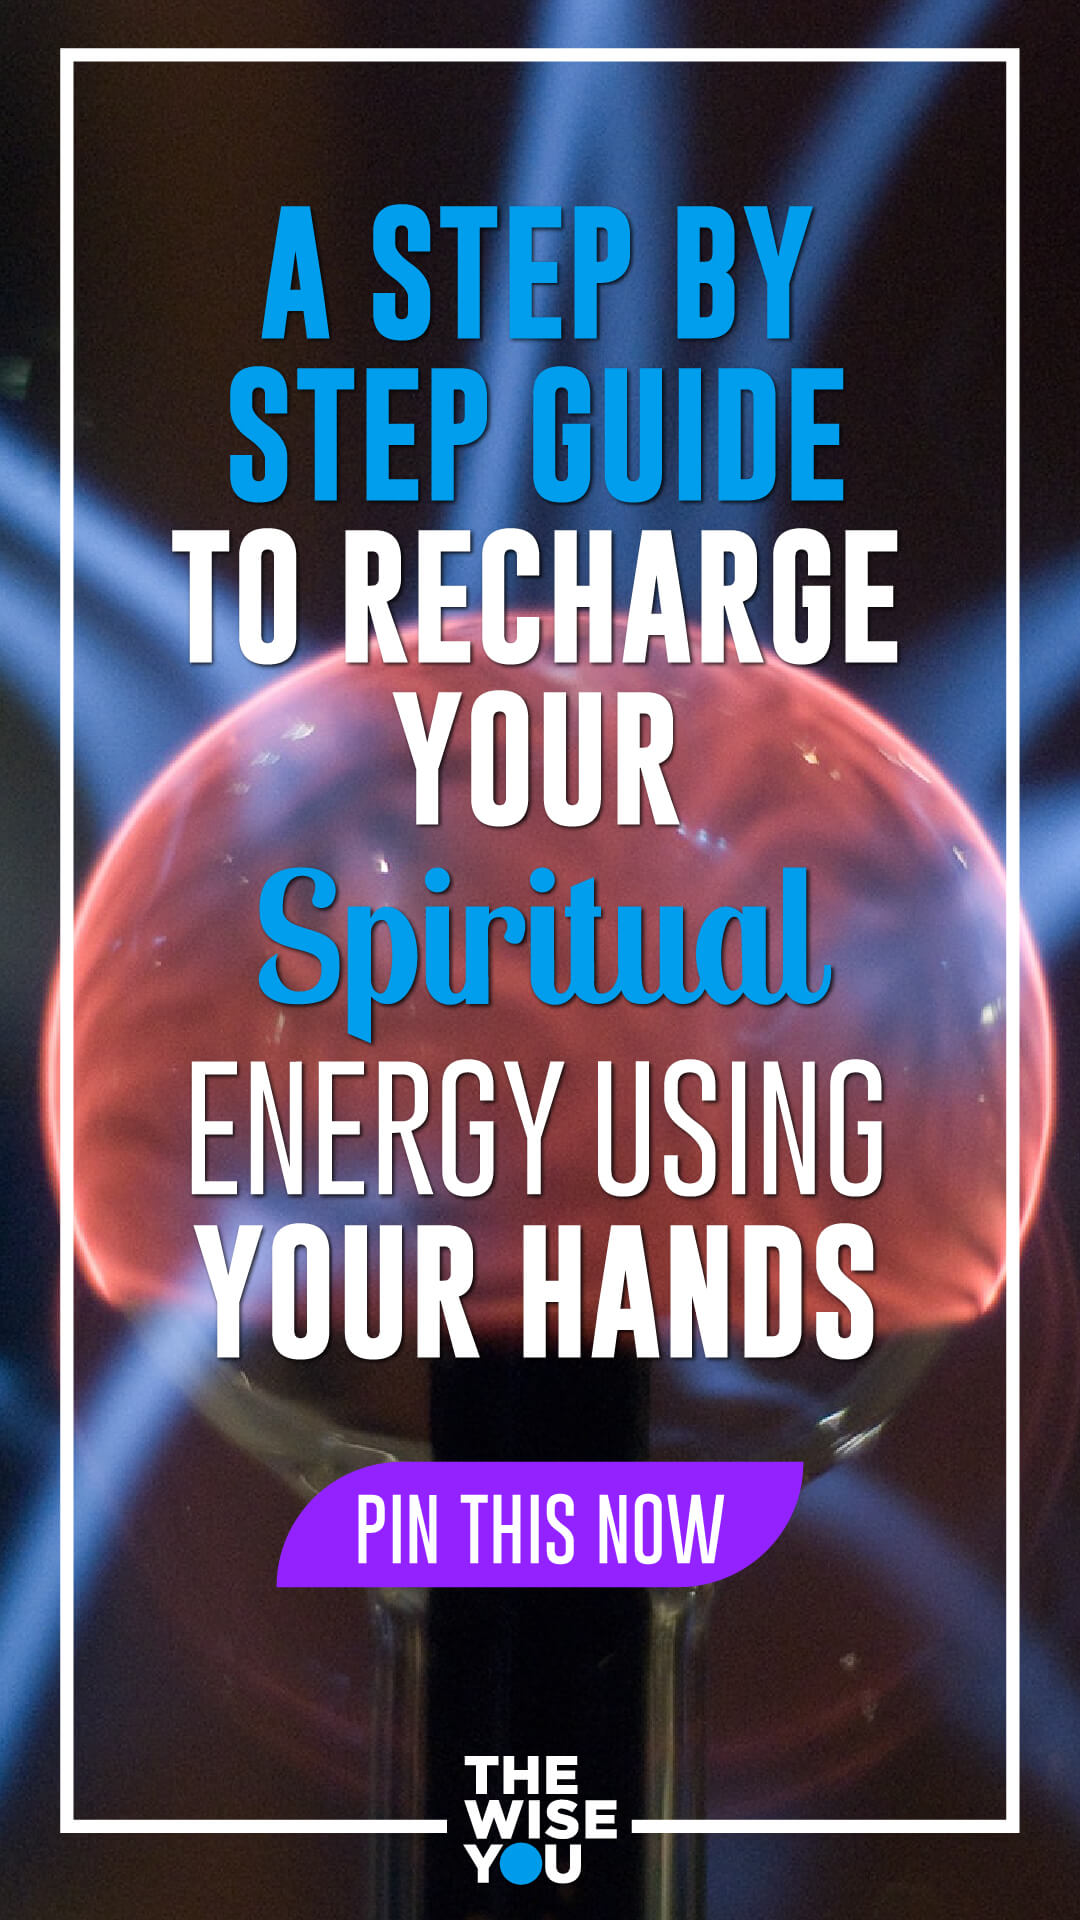 A Step by Step Guide to Recharge Your Spiritual Energy Using Your Hands